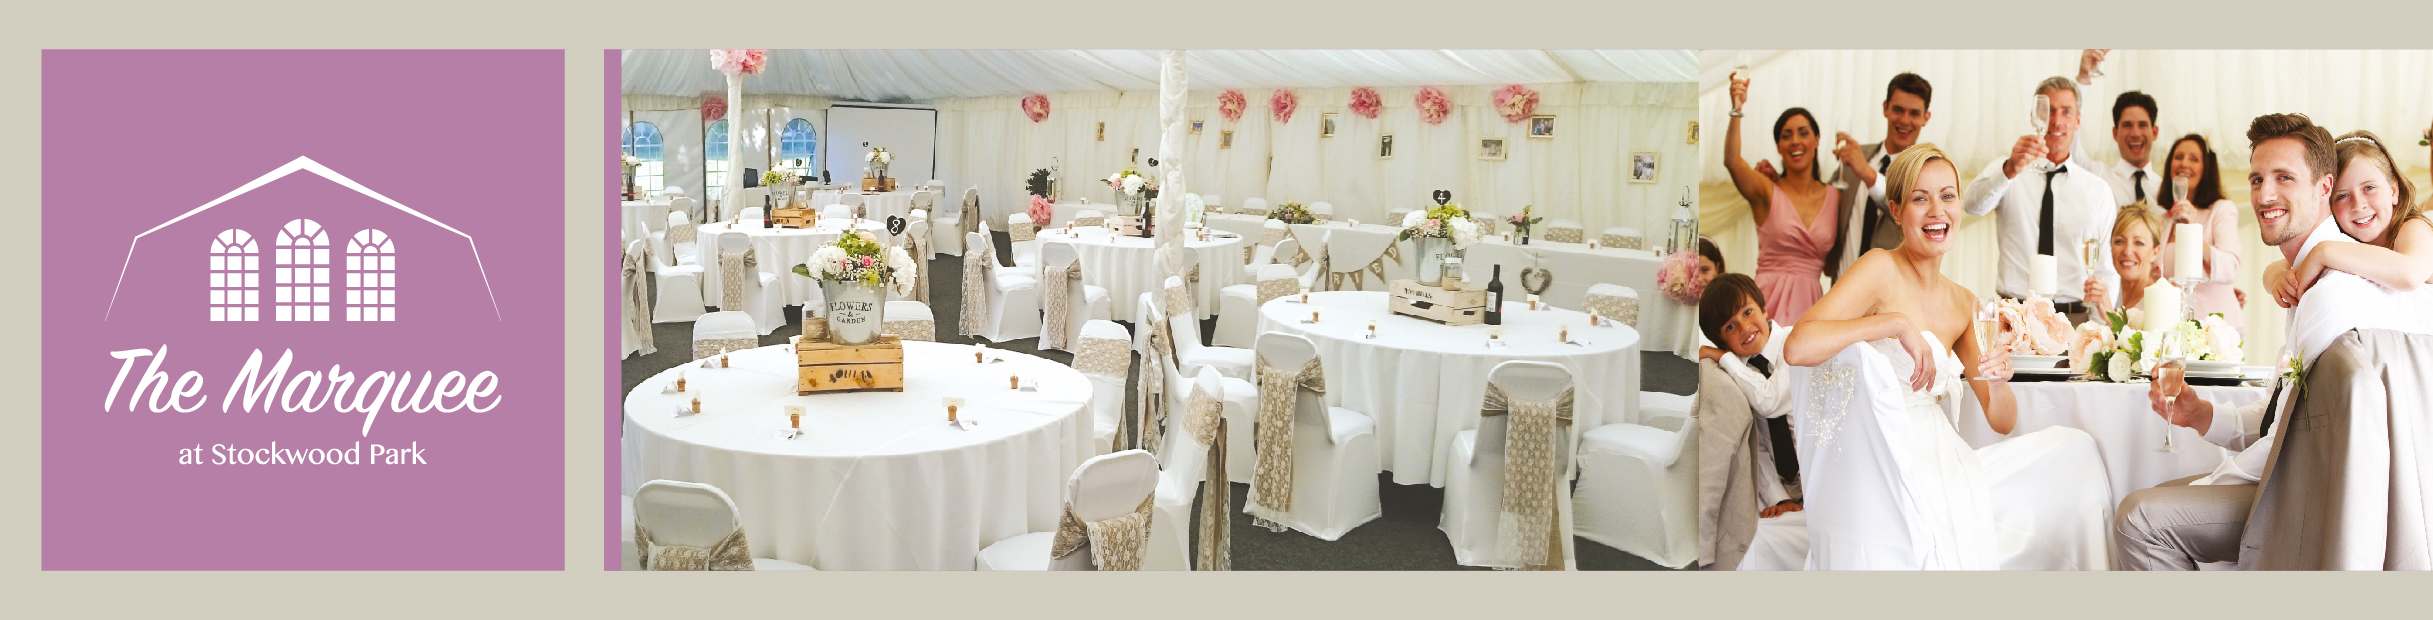 Marquee Stockwood Park wedding receptions Luton 01